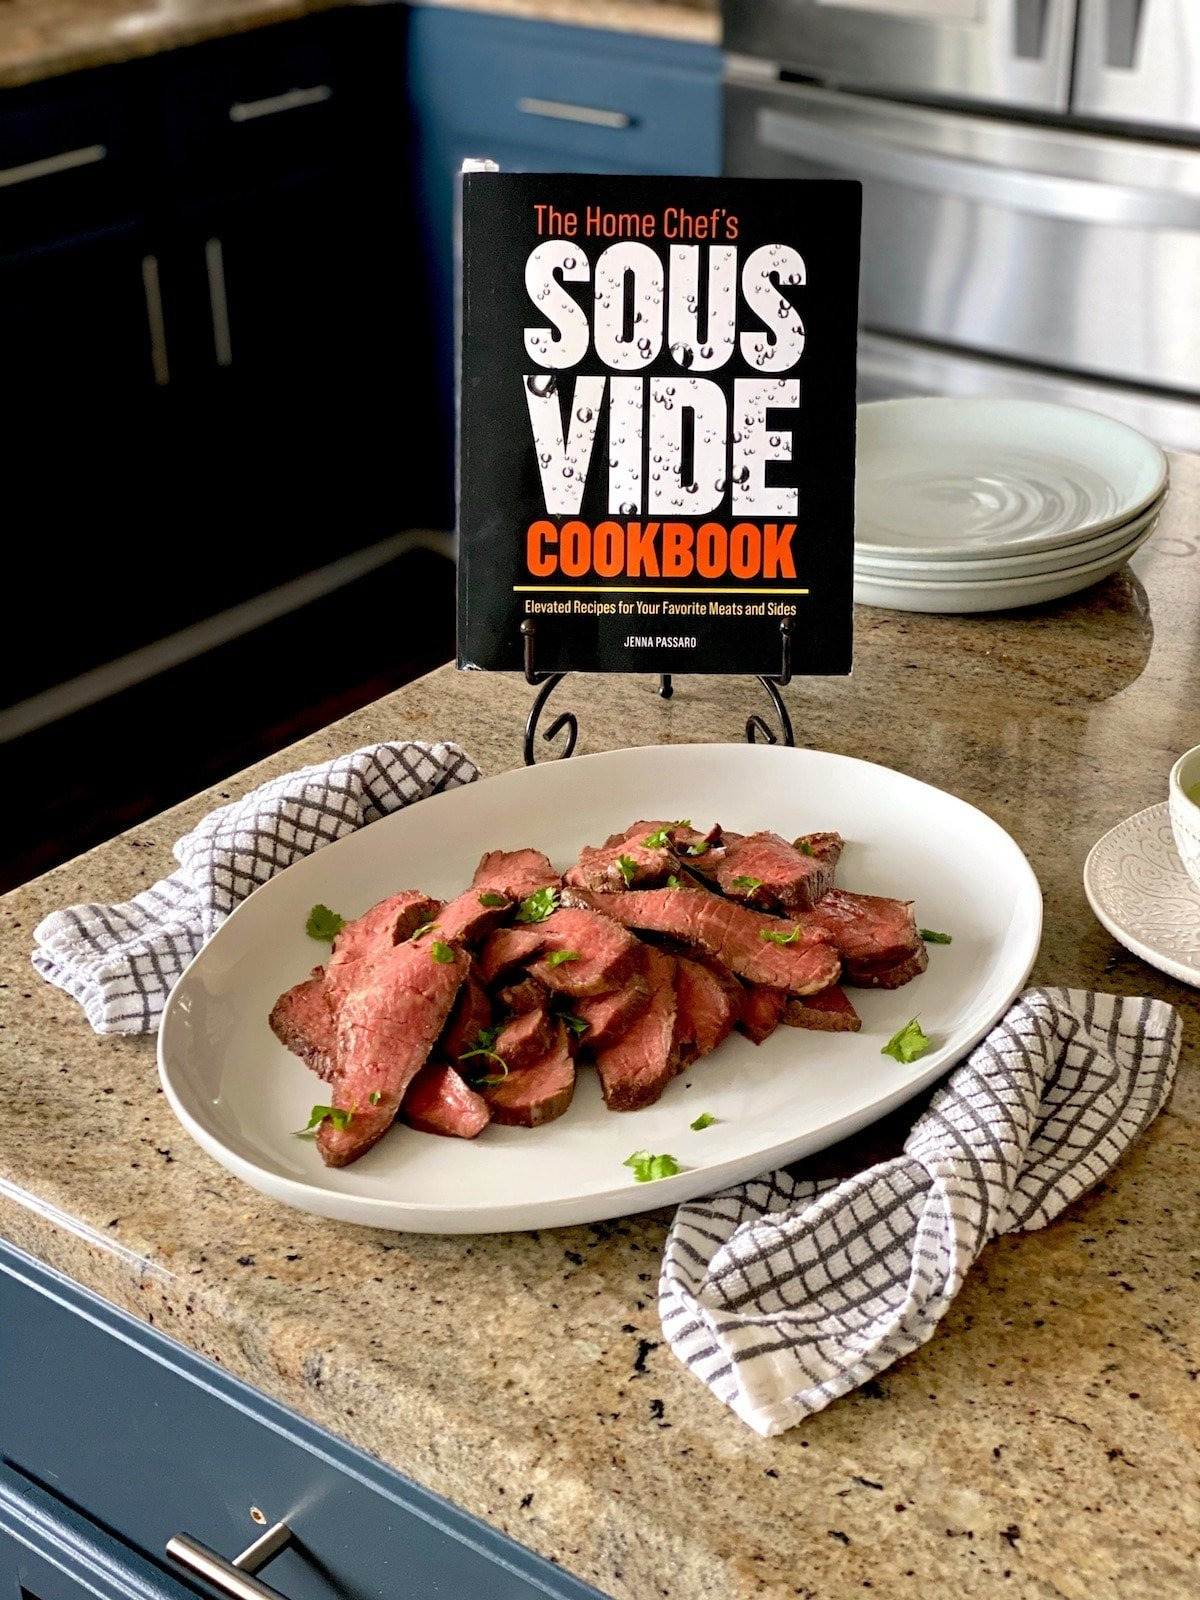 The home chef's sous vide cookbook with sous vide tri tip steak